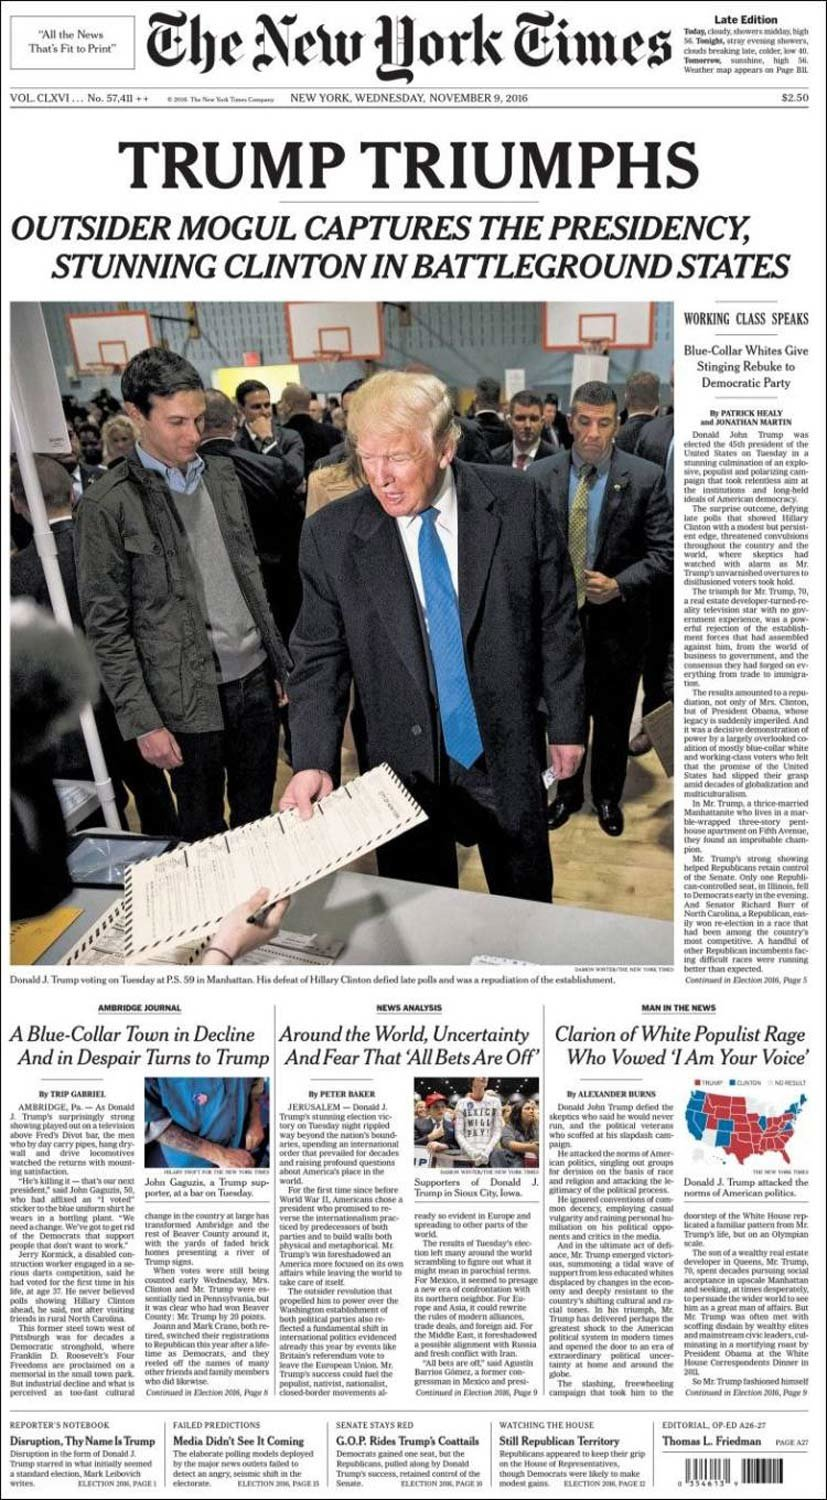 See How the World's Newspapers Reported Donald Trump Victory